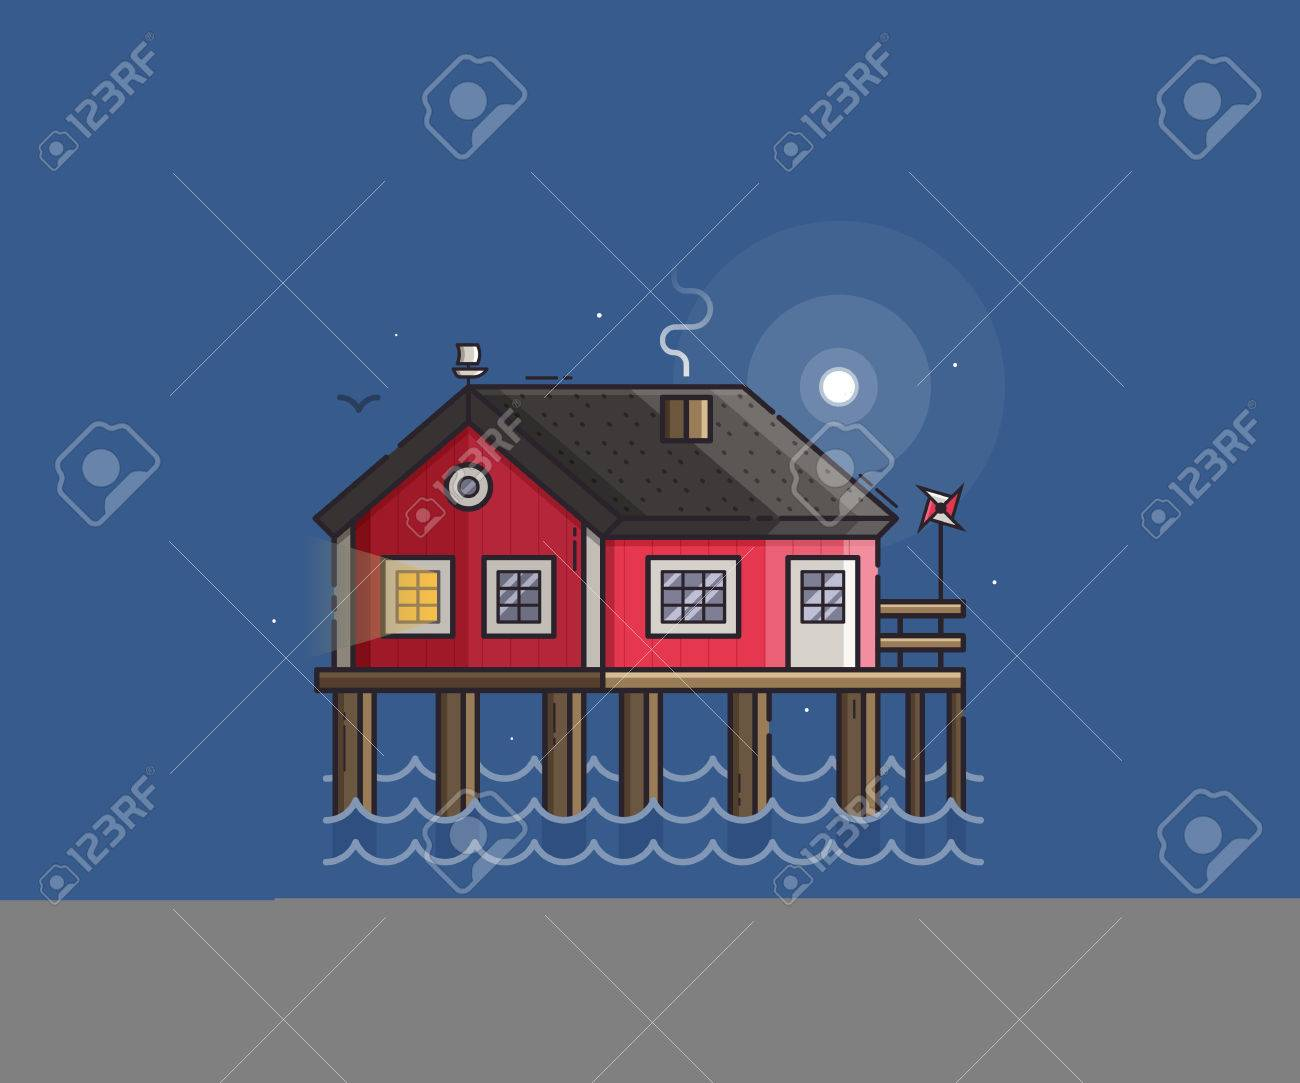 illustration sea side landscape with red stilt house with smoking chimney by moonlight beach pier home building night scene vector illustration - Smoking House Designs